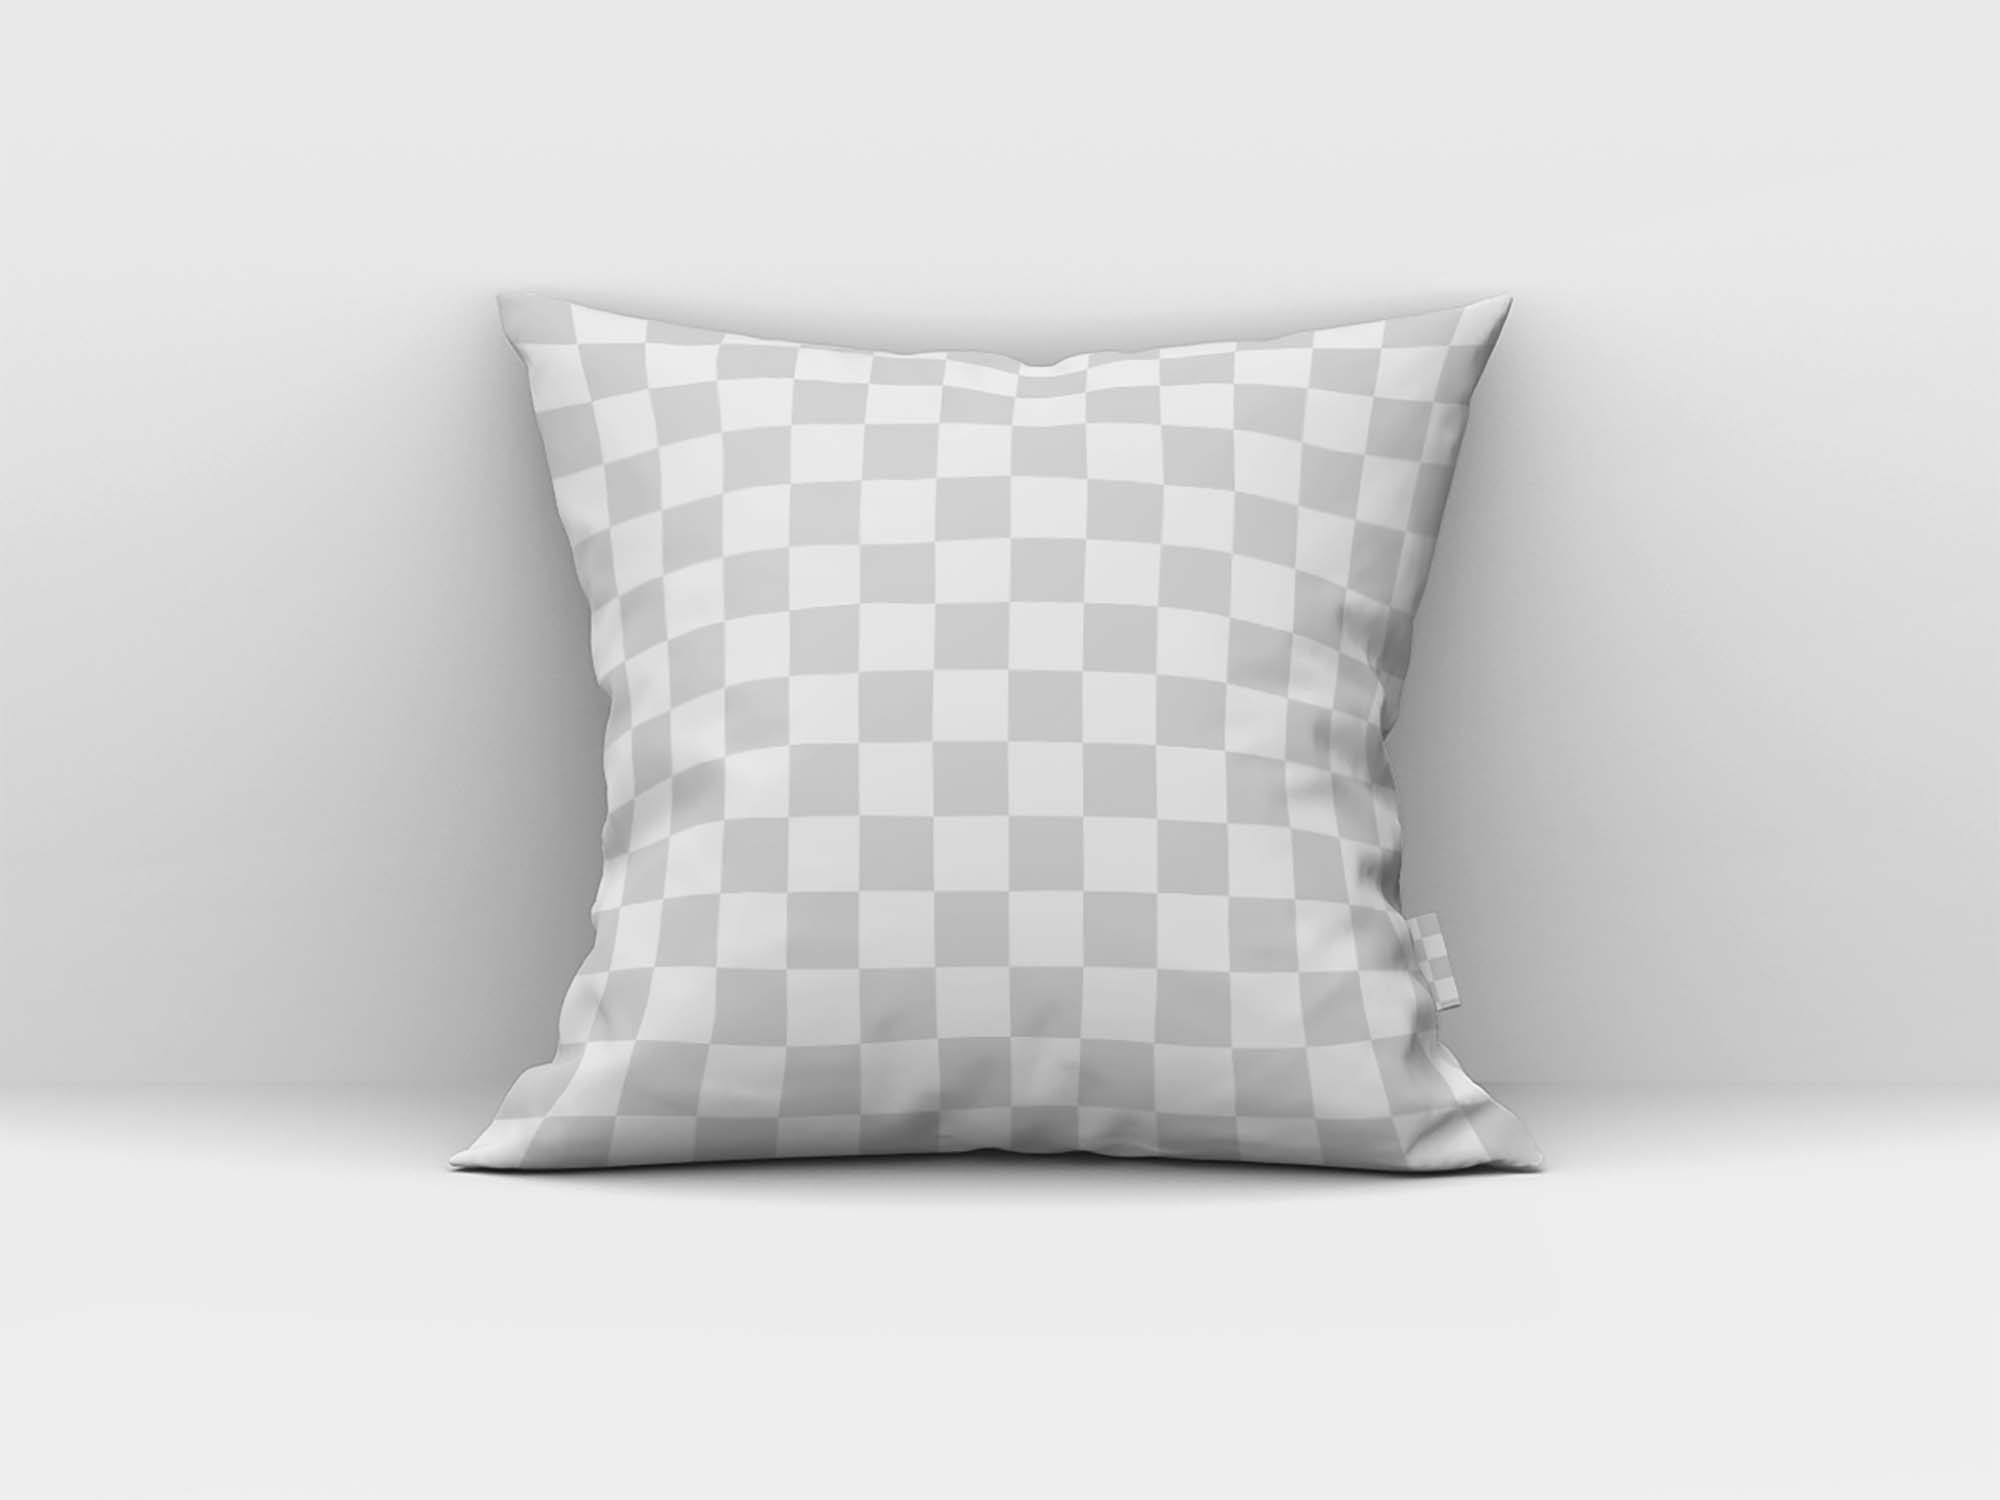 Square Cushion Mockup 2